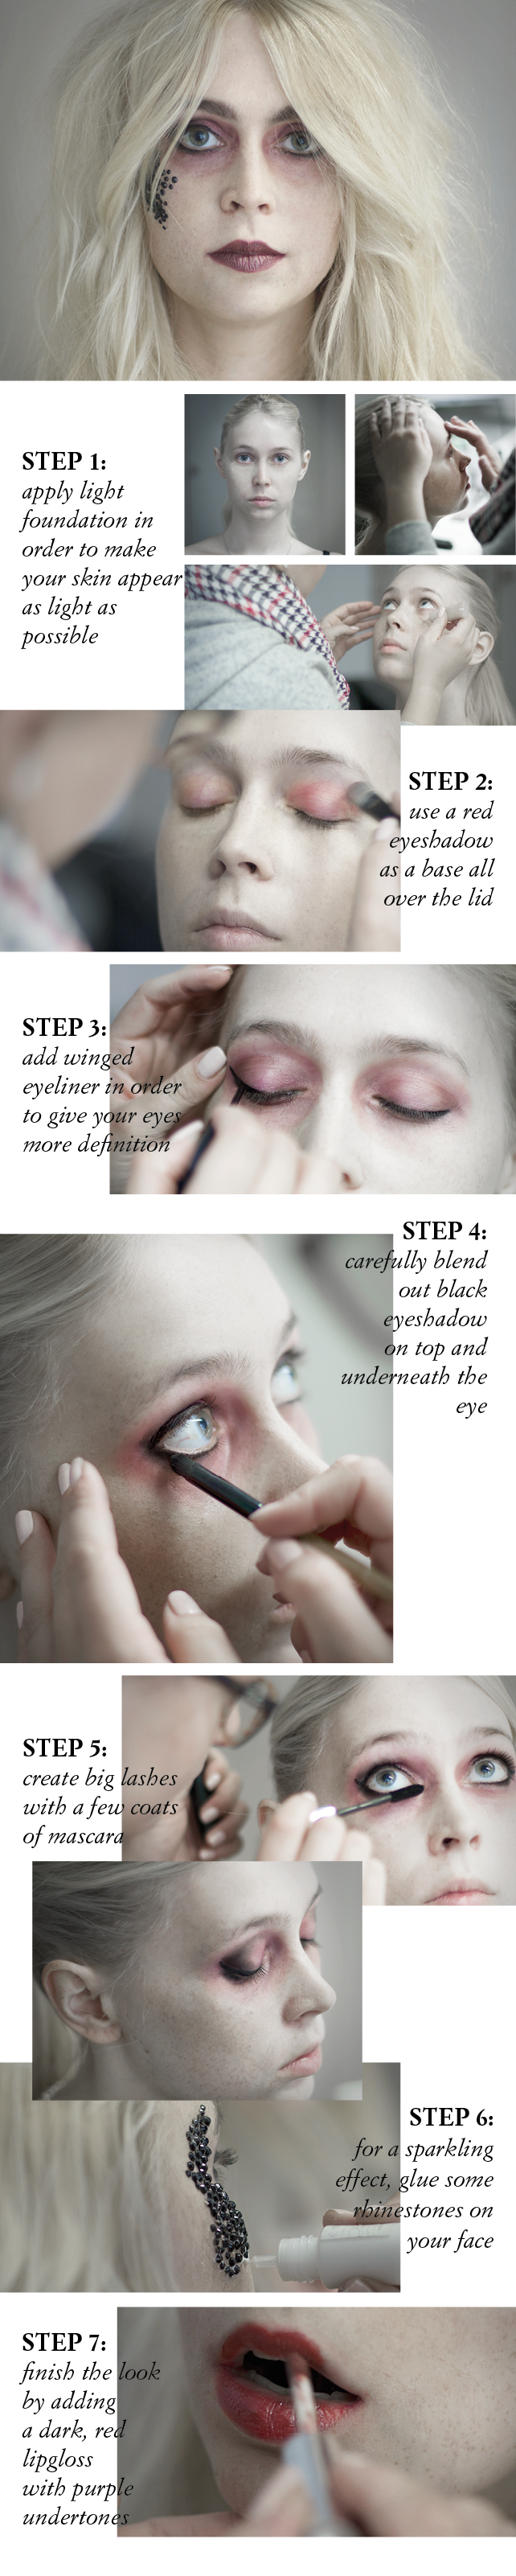 #halloween #makeup #tutorial #dead #bride #grunge #dark